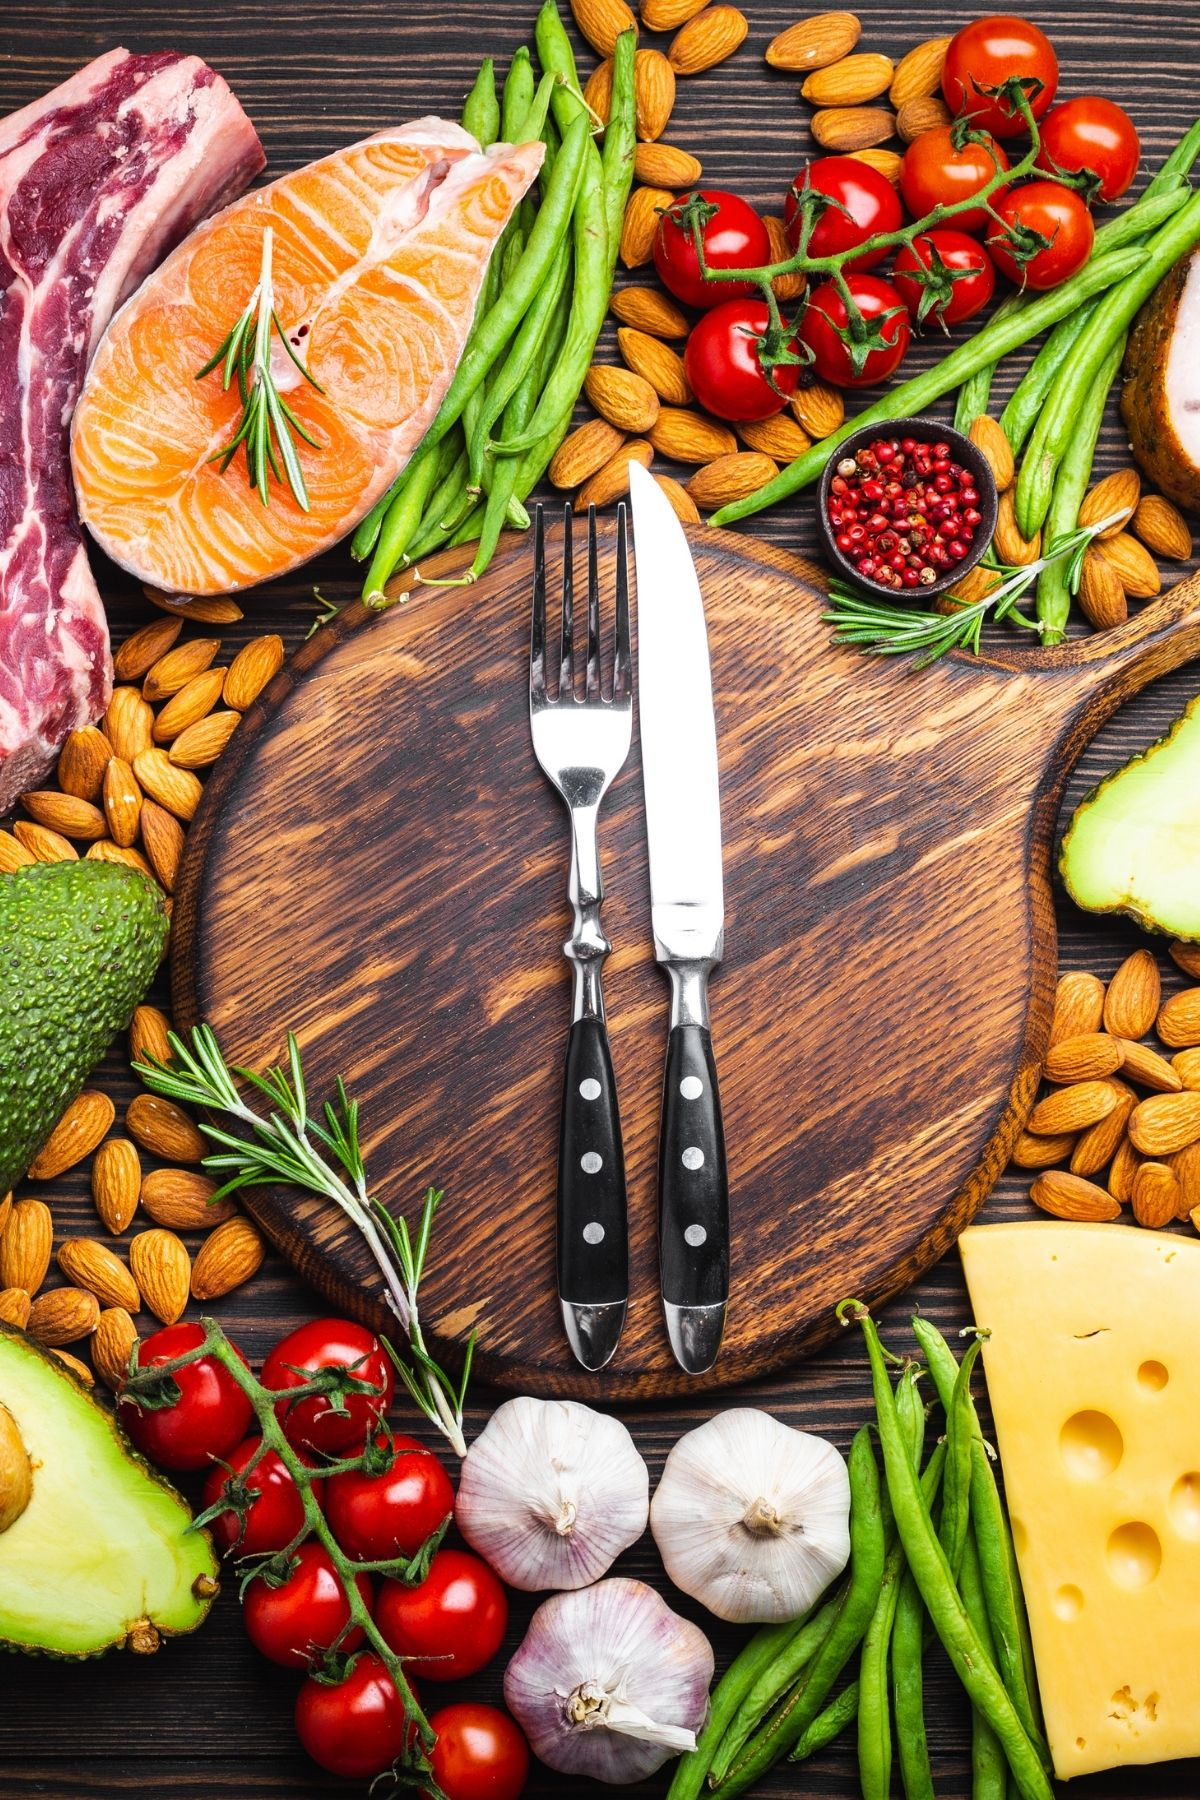 keto diet foods on a table with a fork and knife